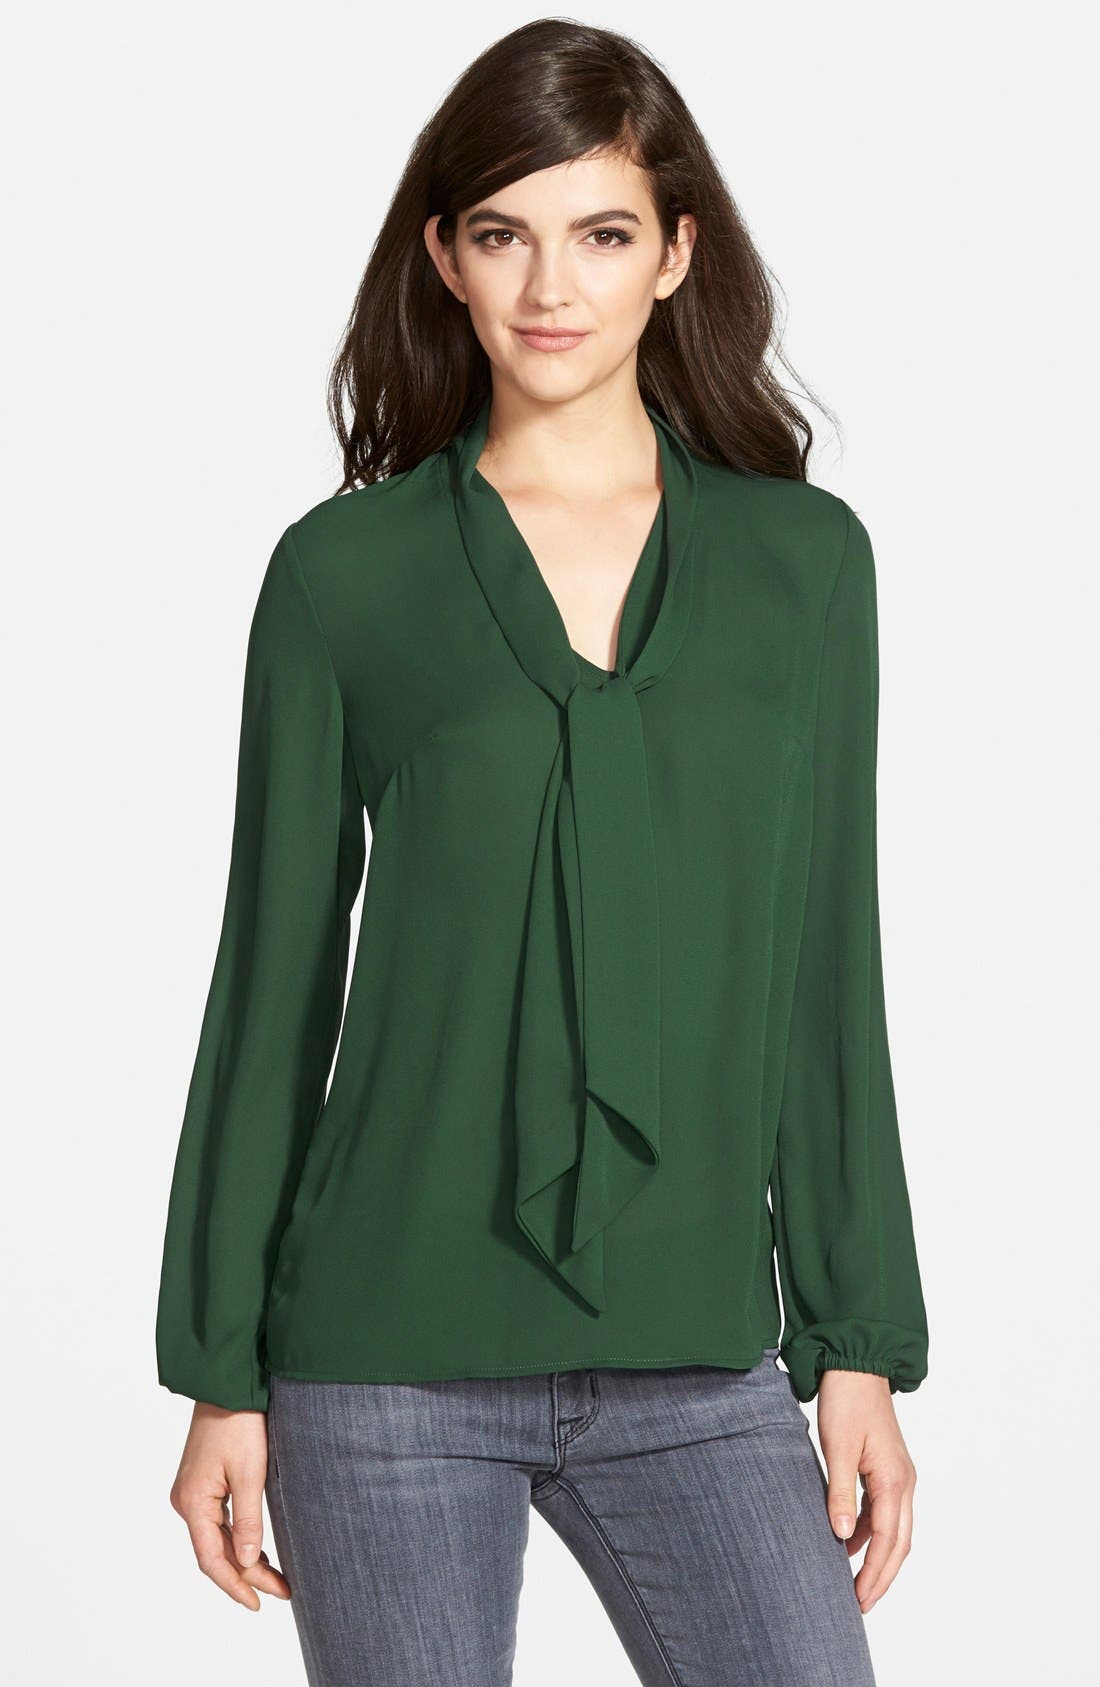 Alternate Image 1 Selected - Bailey 44 Long Sleeve Tie Neck Blouse (Nordstrom Exclusive)